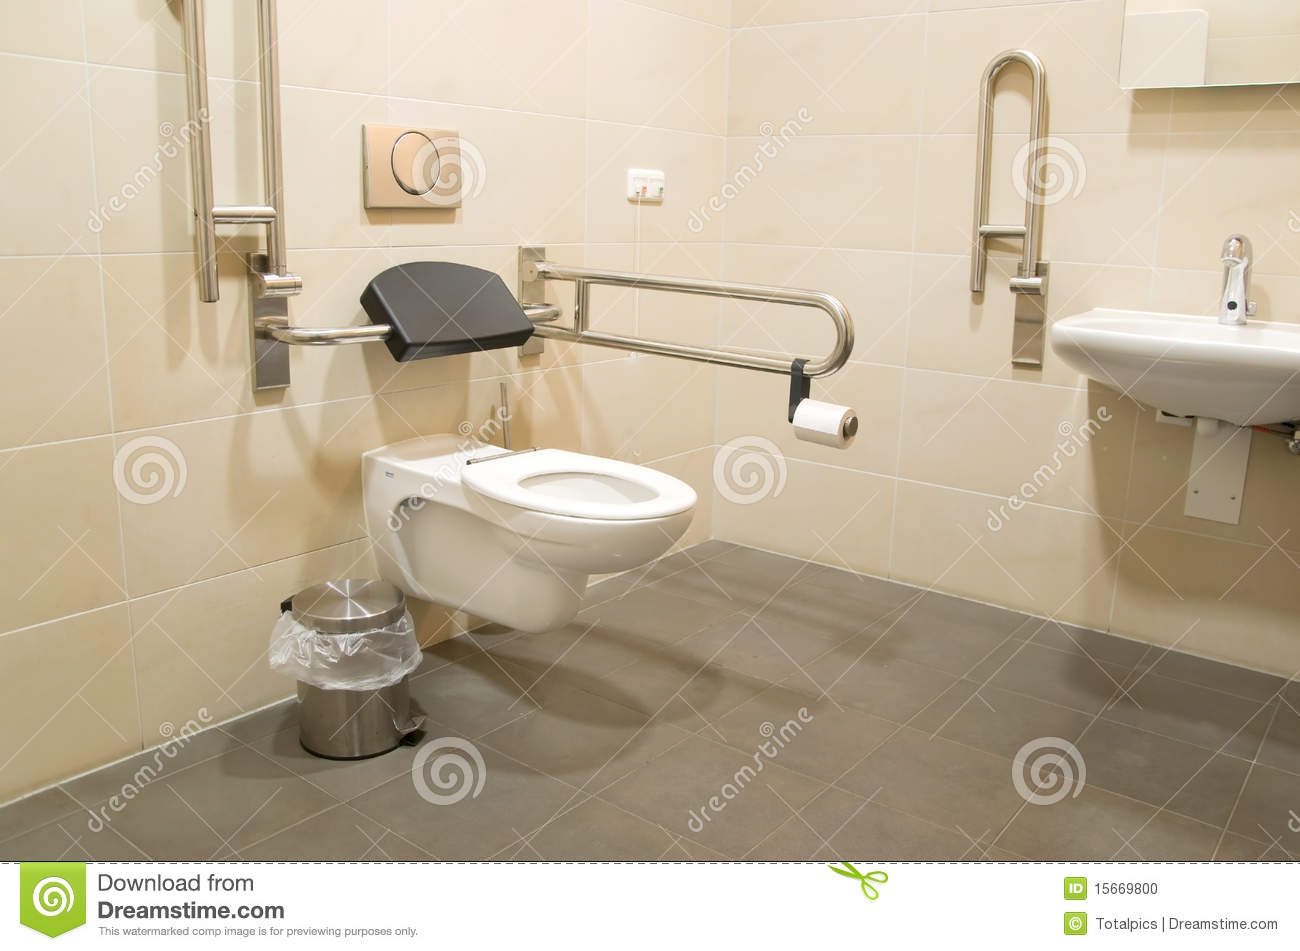 Barra Baño Minusvalidos Bathroom For Disabled People Stock Photo Image 15669800